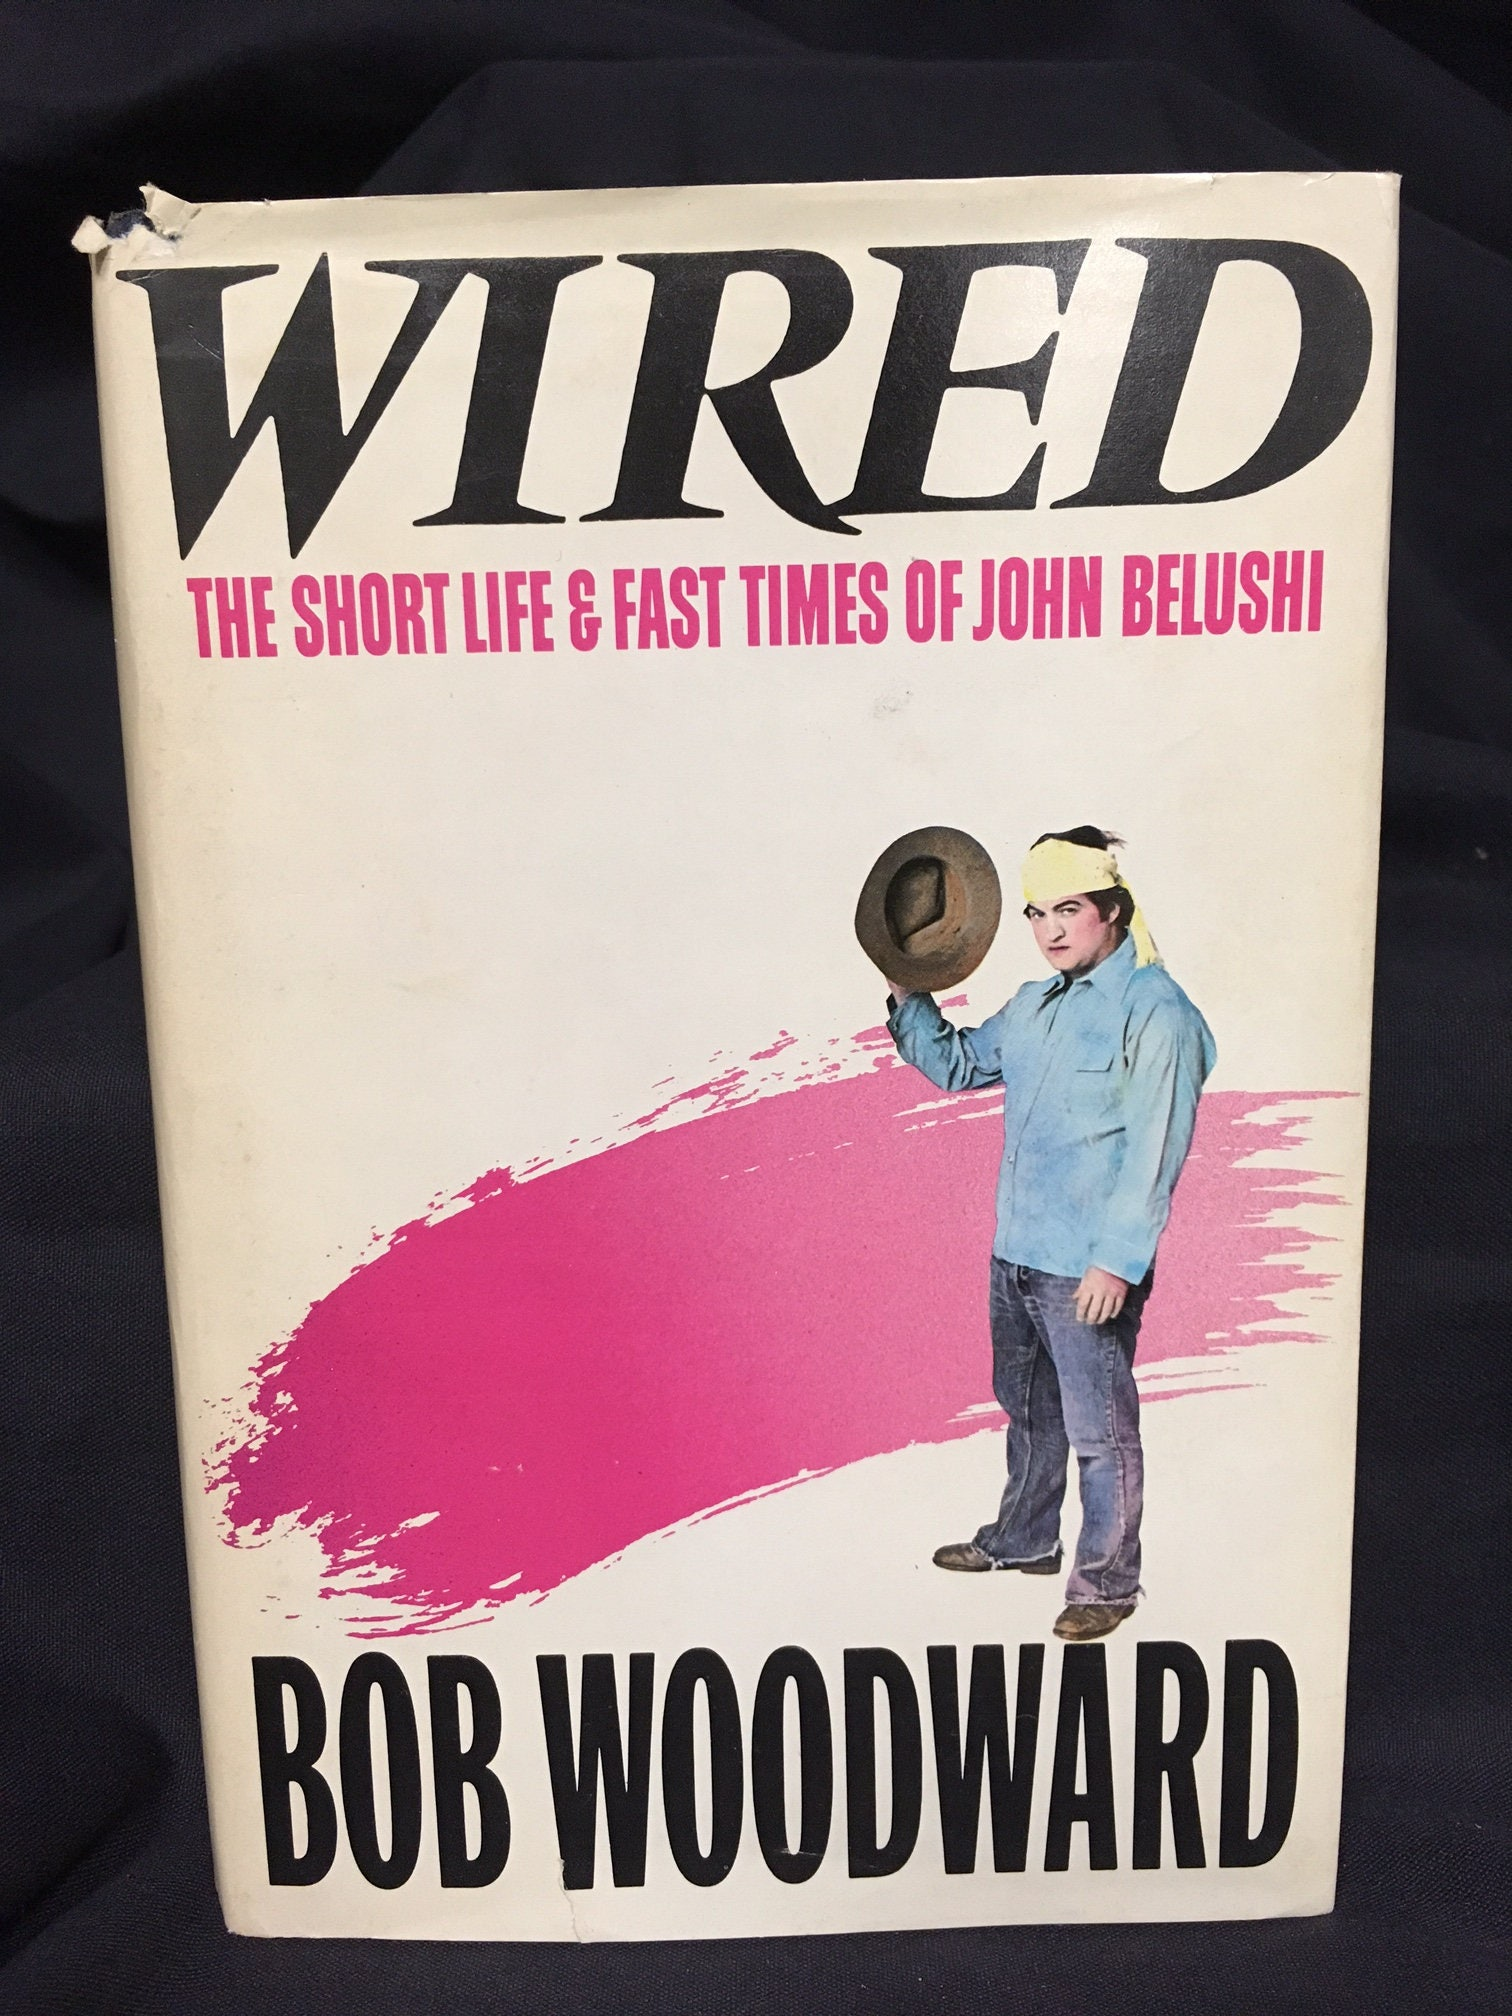 Wired: The Short Life & Fast Times of John Belushi by Bob | Etsy